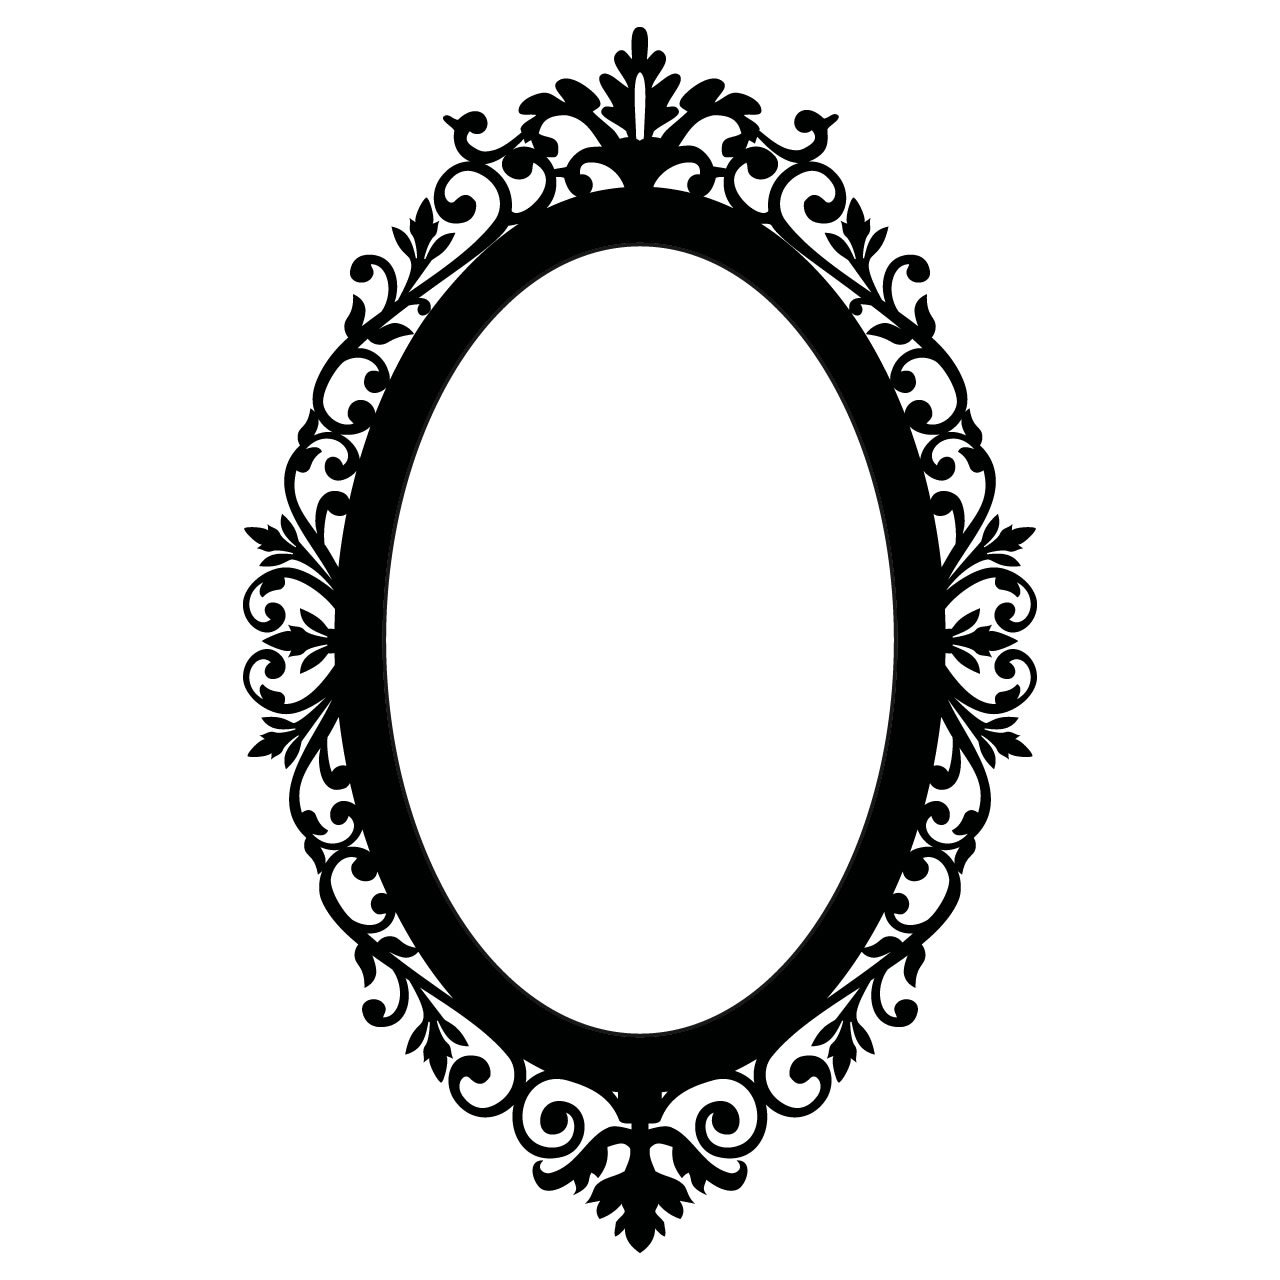 Ornate Oval Frame Vintage Wall Sticker World of Wall Stickers